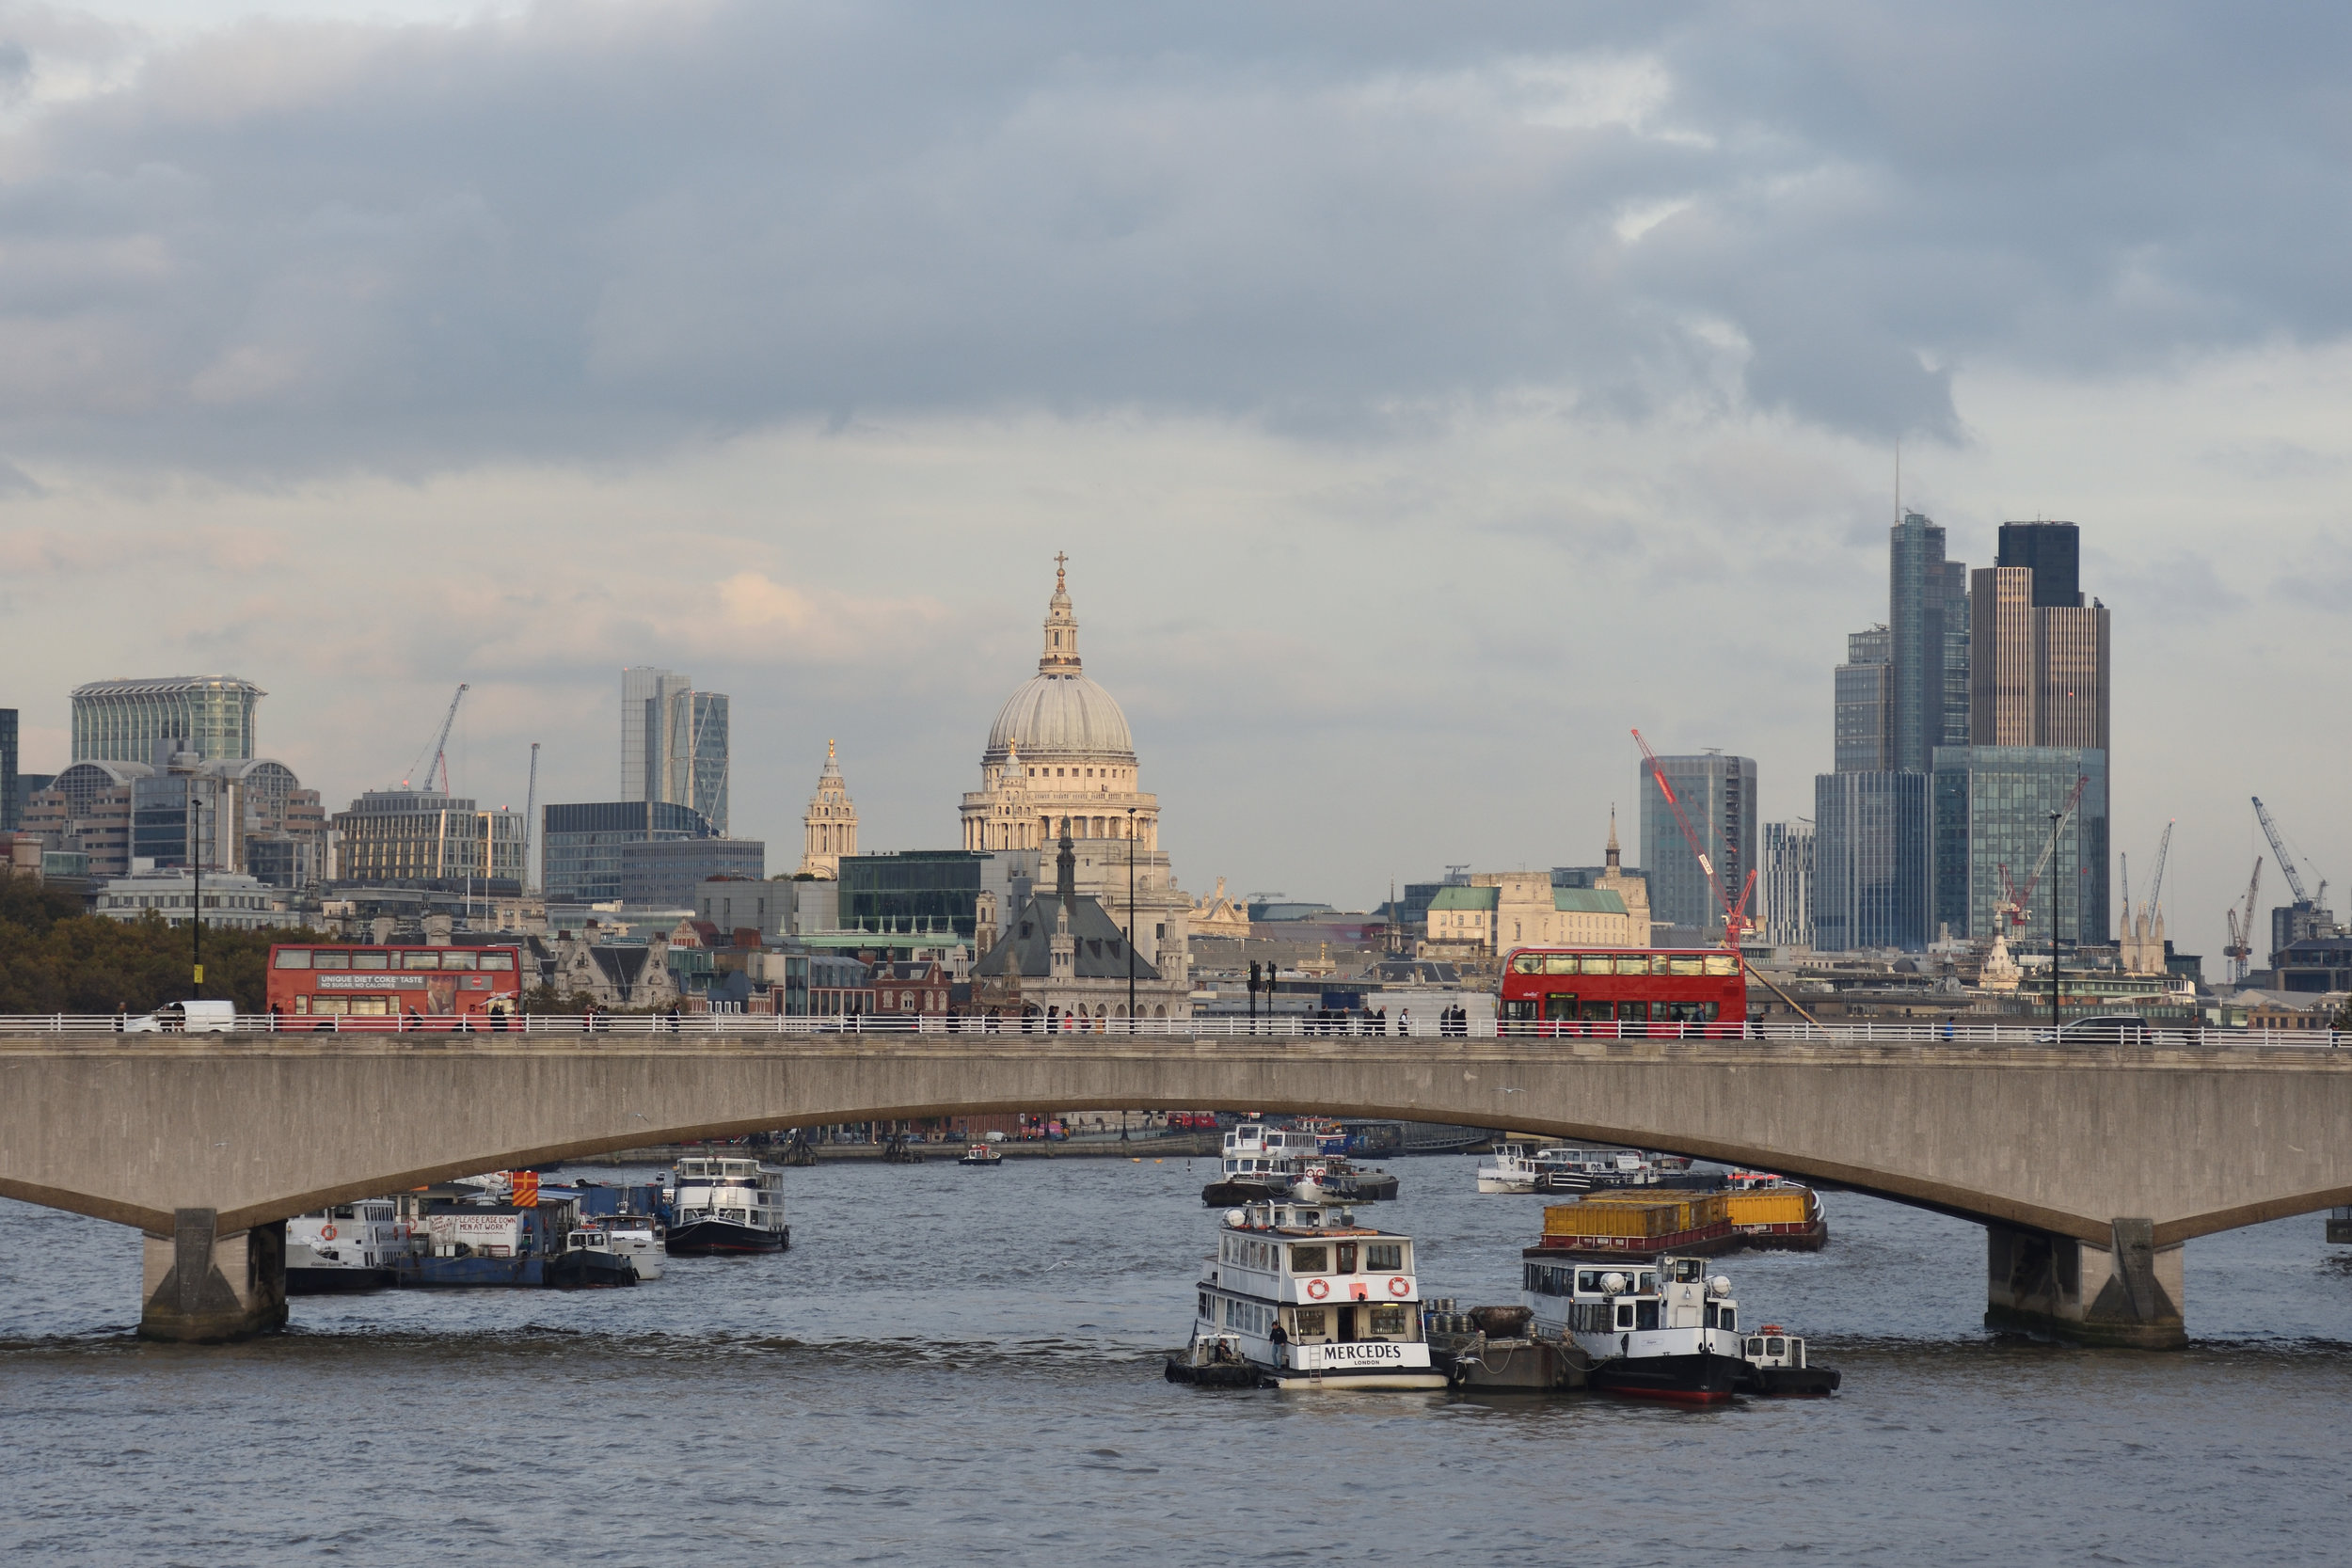 View over the Thames, London 2016